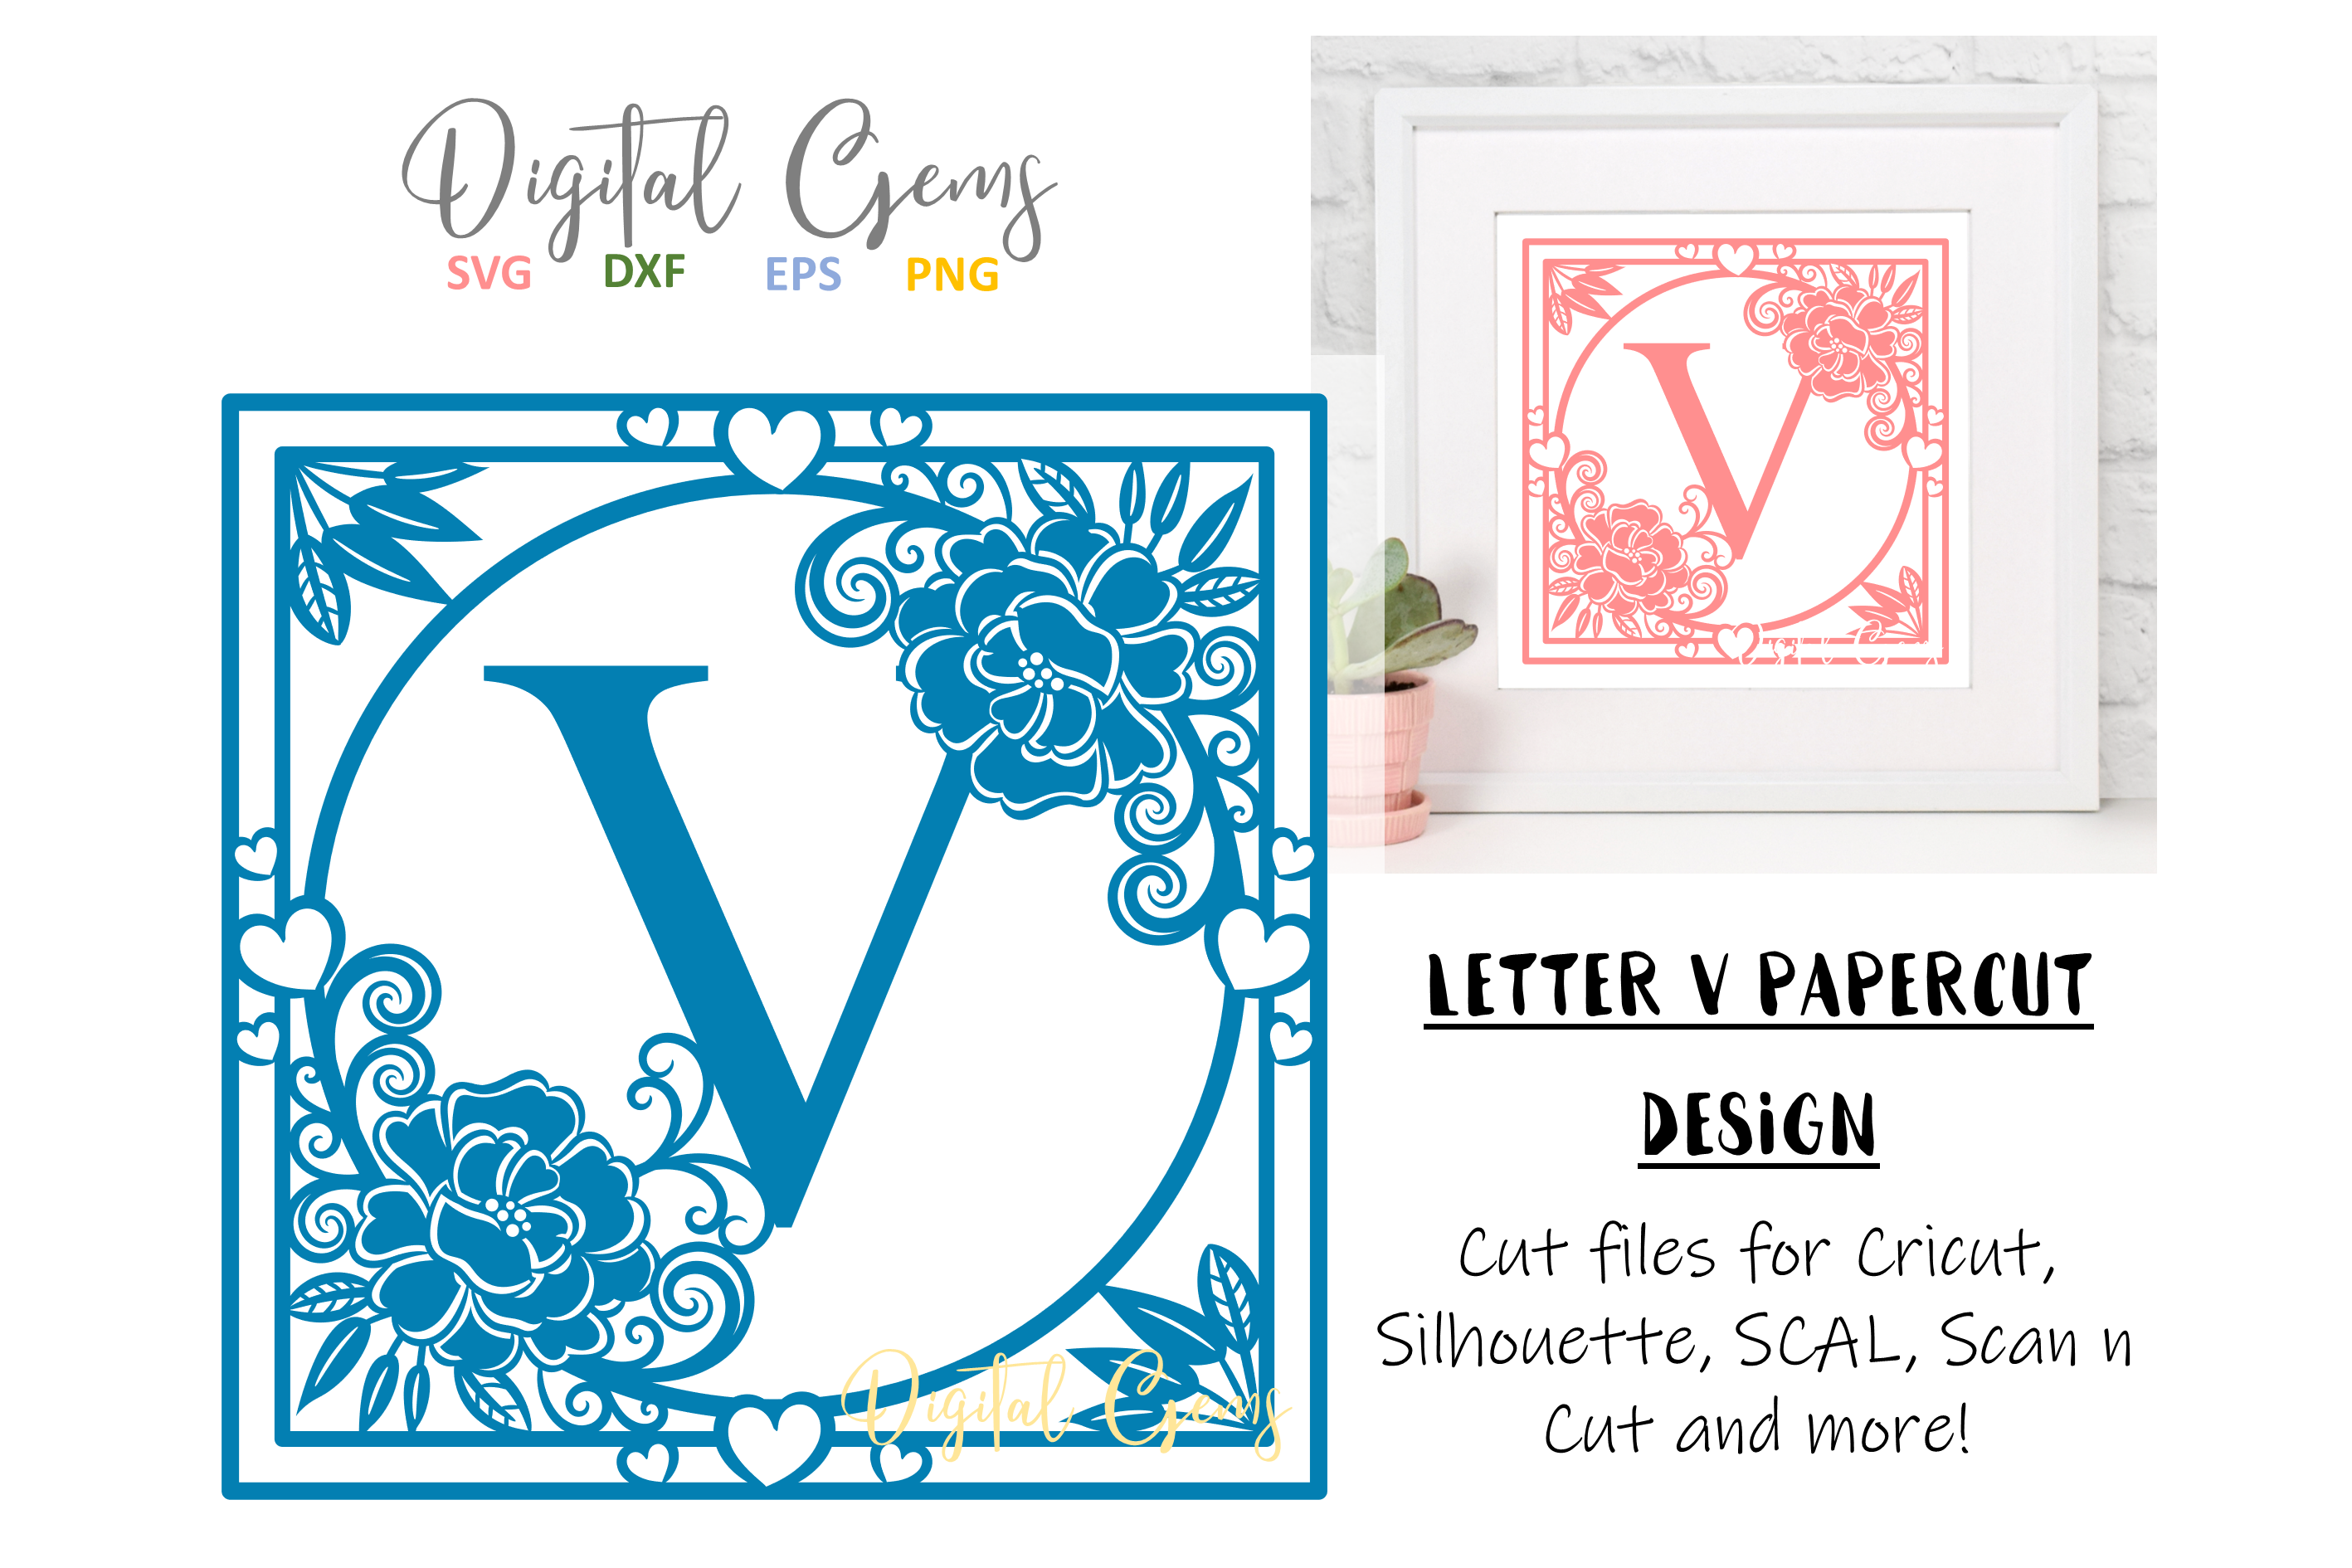 Letter V papercut design. SVG / DXF / EPS files example image 1